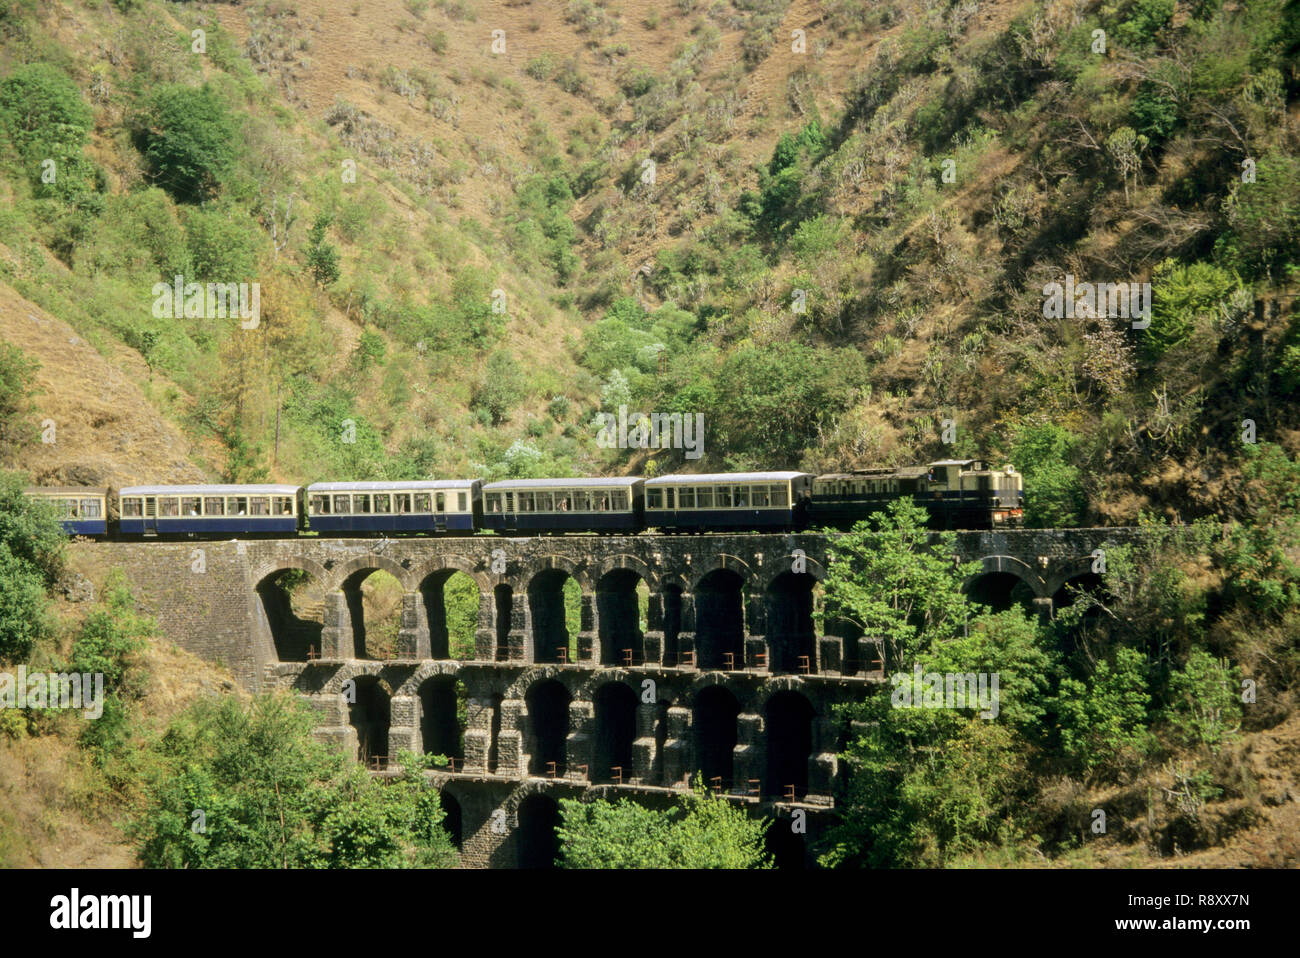 Trains Railways, kalka to shimla toy train, himachal pradesh, india - Stock Image